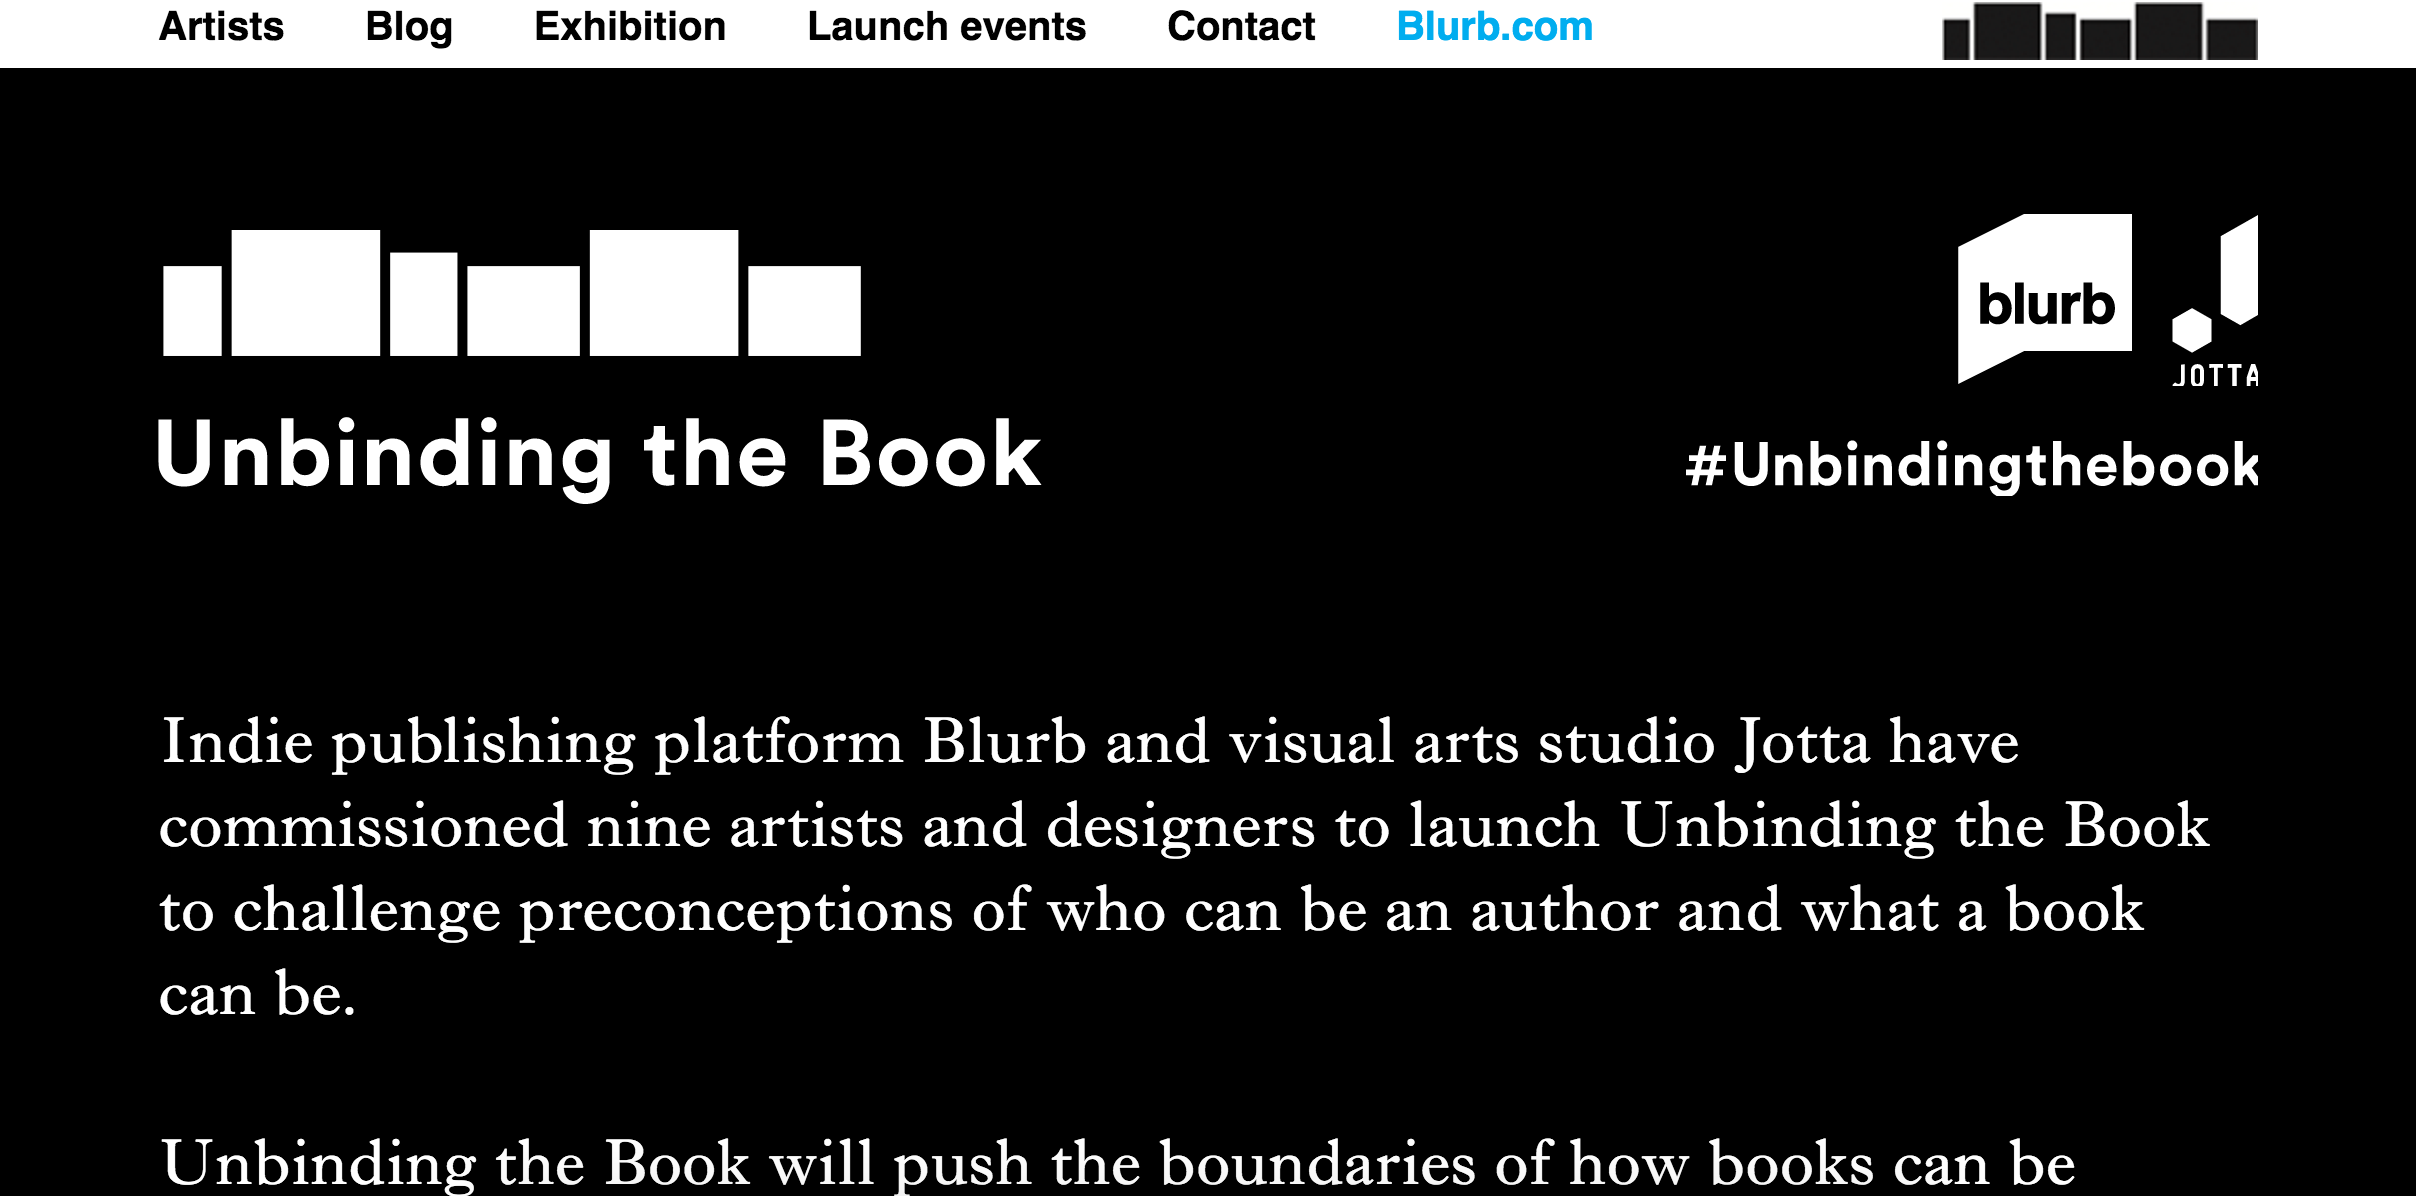 Unbinding the book